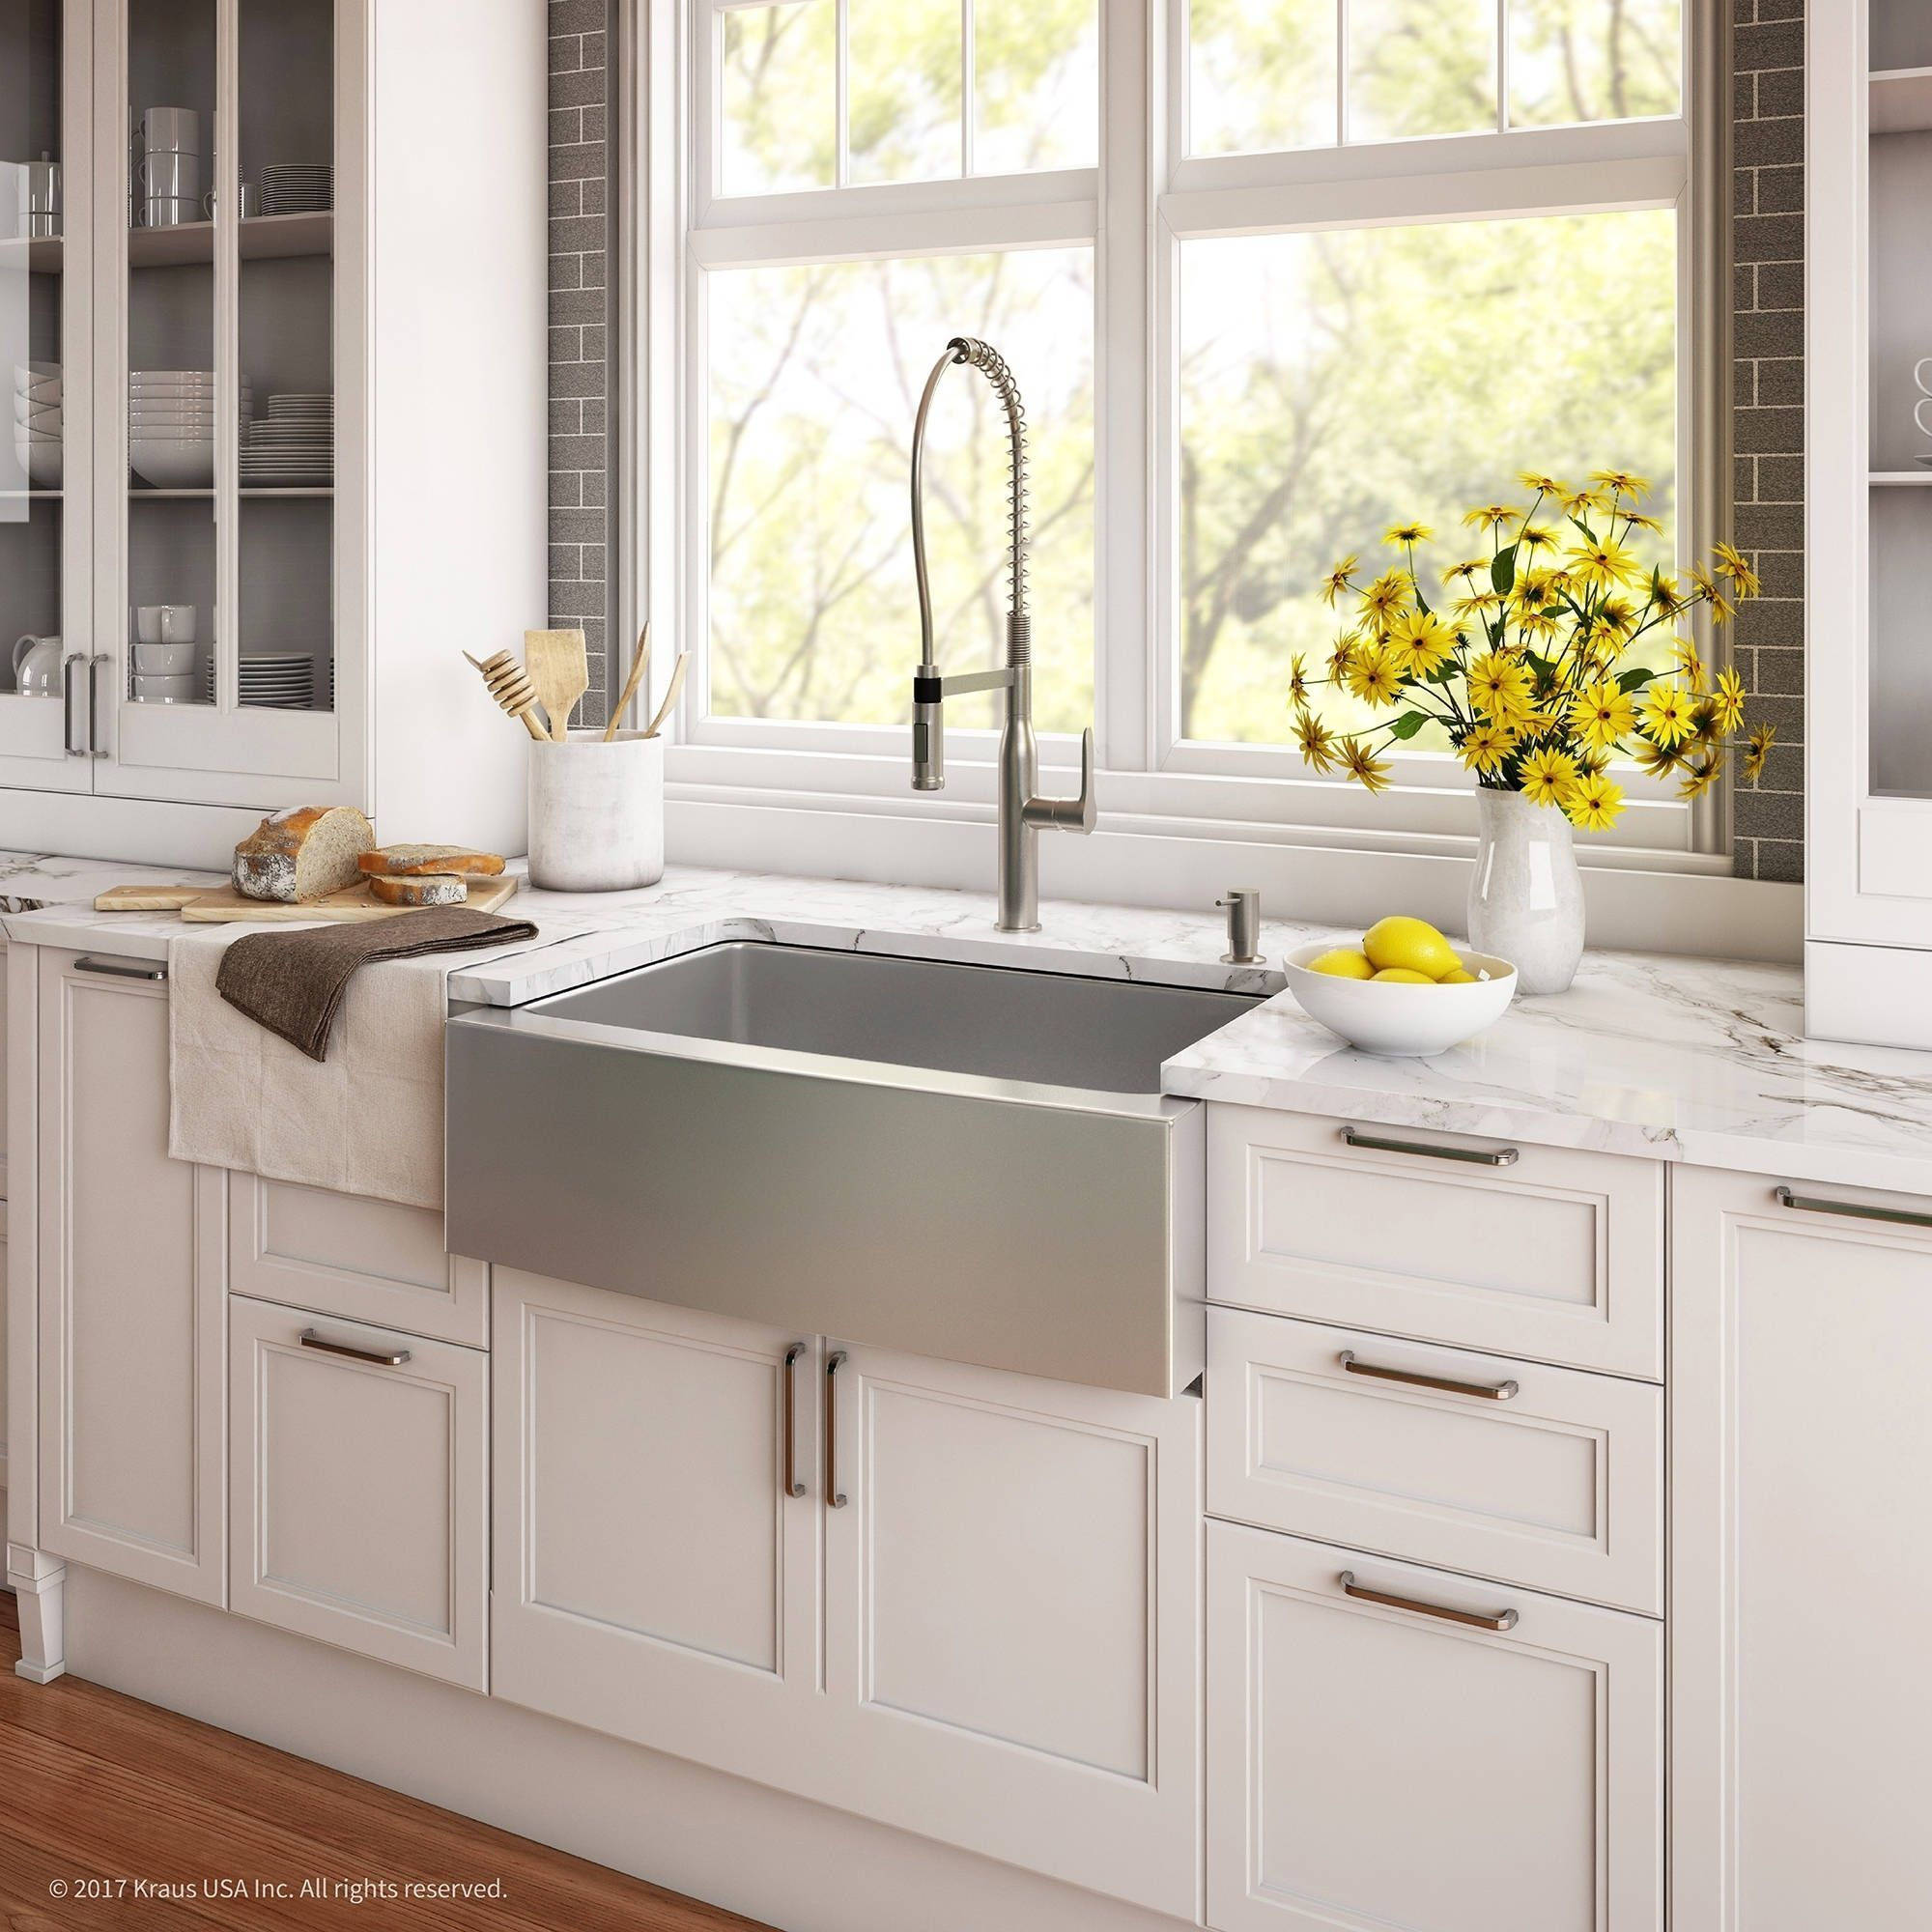 5 Exhilarating Remodeling Your Kitchen Should You Get A Dishwasher Ideas In 2020 Kitchen Remodel Small Kitchen Style Farmhouse Sink Kitchen